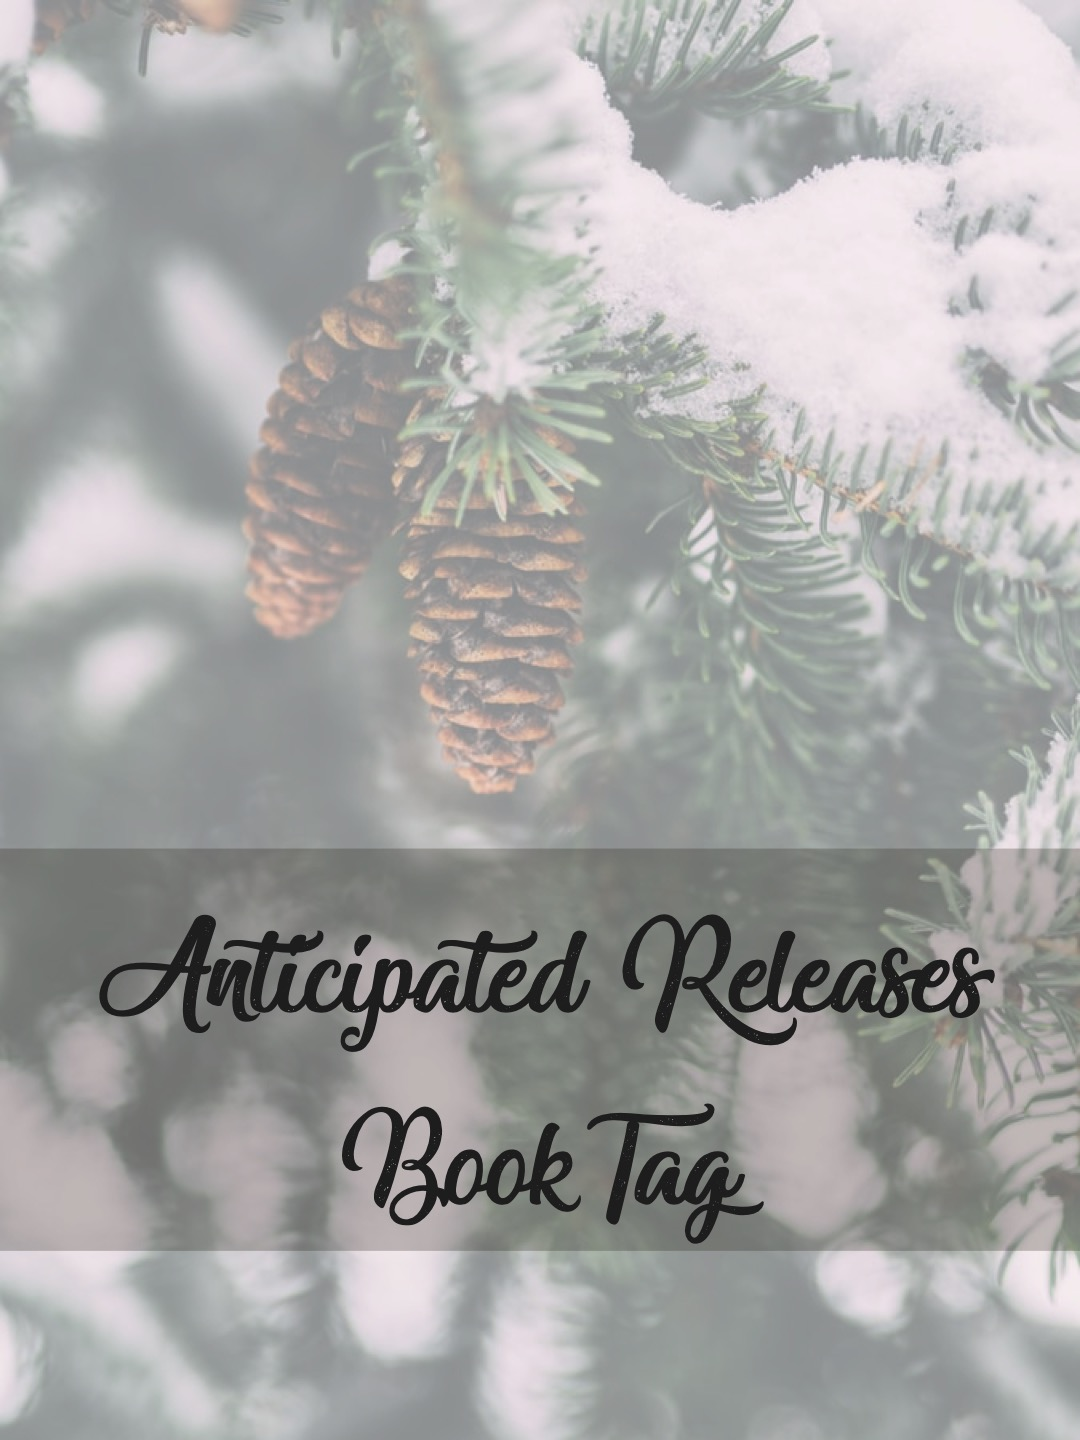 Tag: Anticipated Releases Book Tag